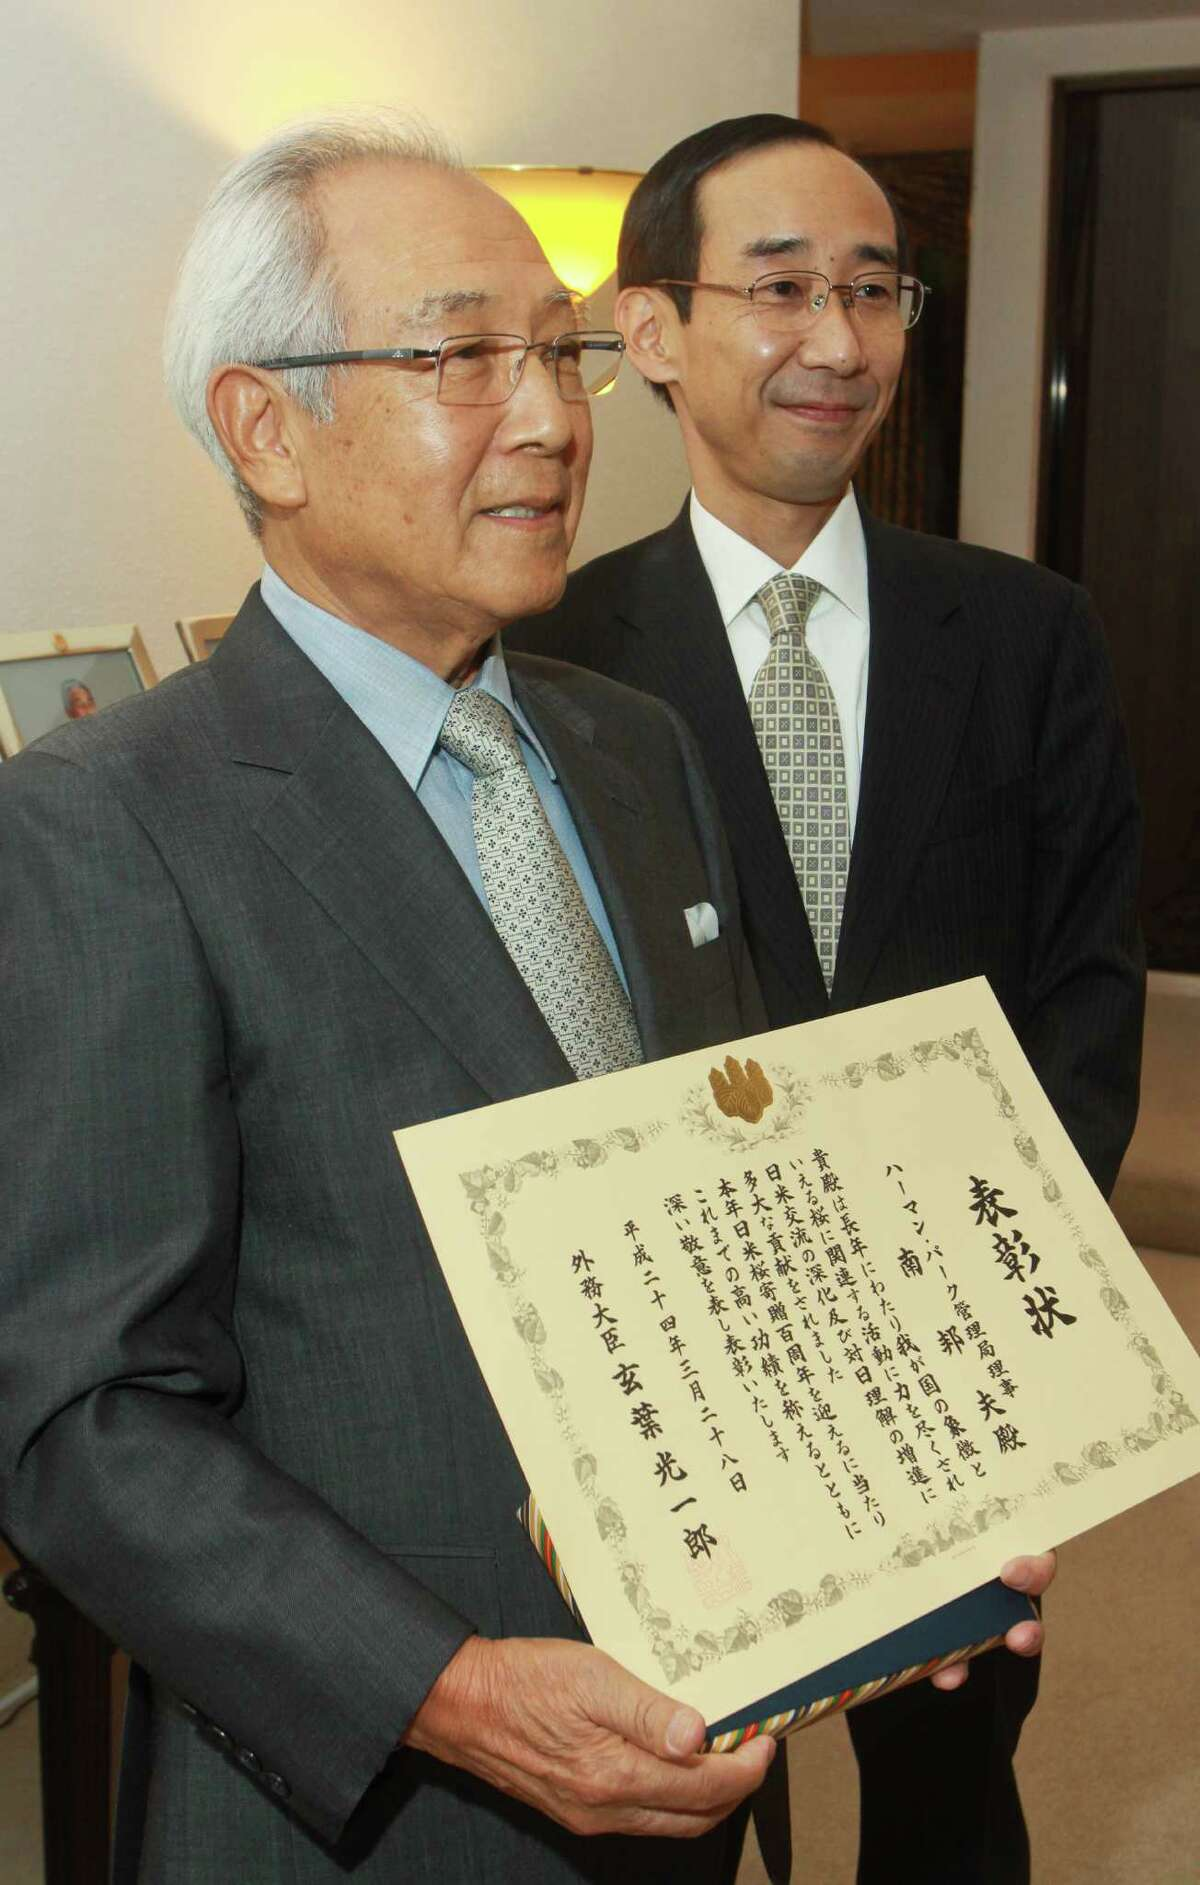 Honoree Kunio Minami, holding the Japanese Foreign Minister's commendation, left, and Consul General Jota Yamamoto